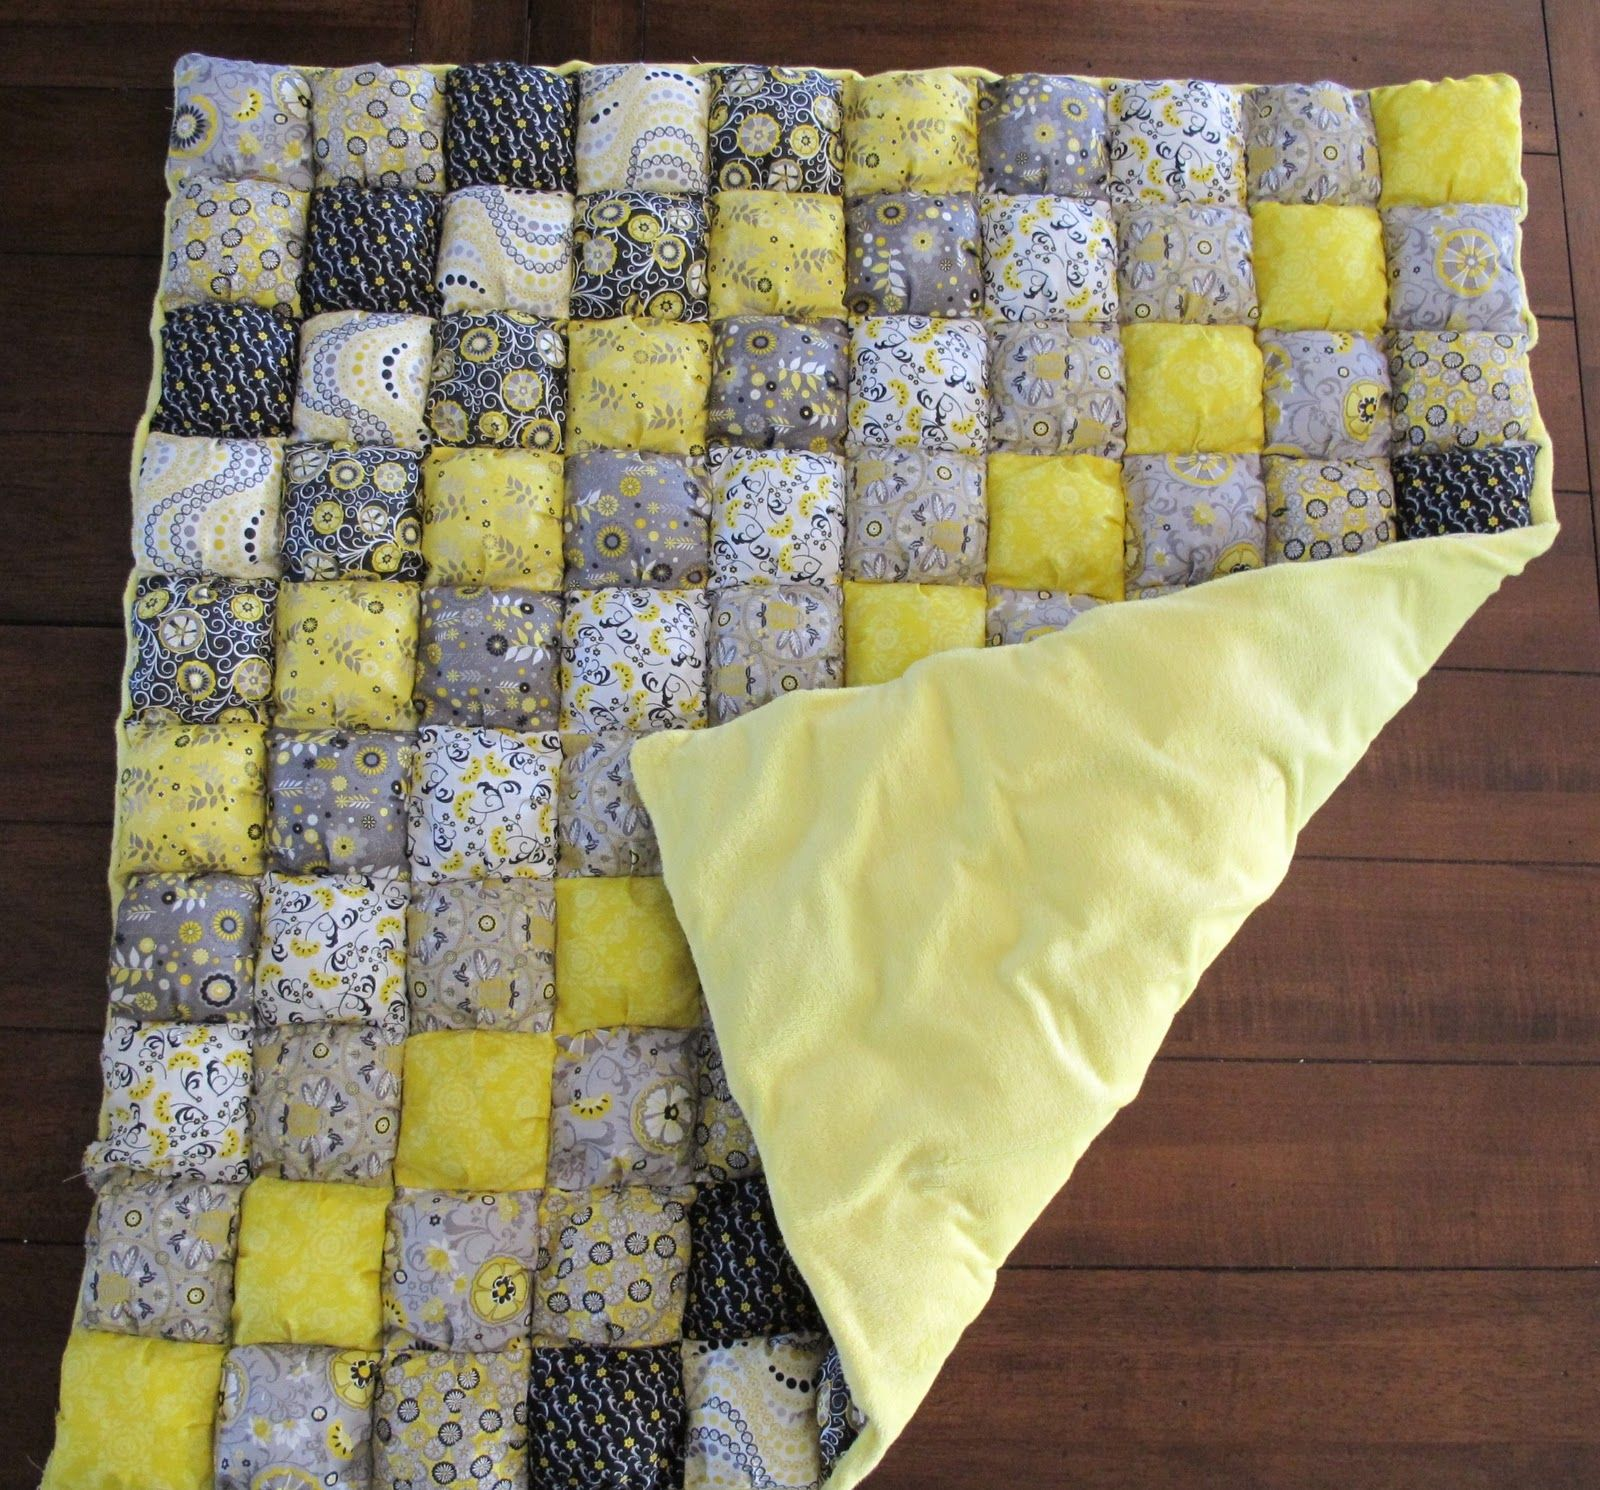 3 Hour Rag Quilt Tutorial | Quilt tutorials, Rag quilt and Tutorials : quilt making for dummies - Adamdwight.com